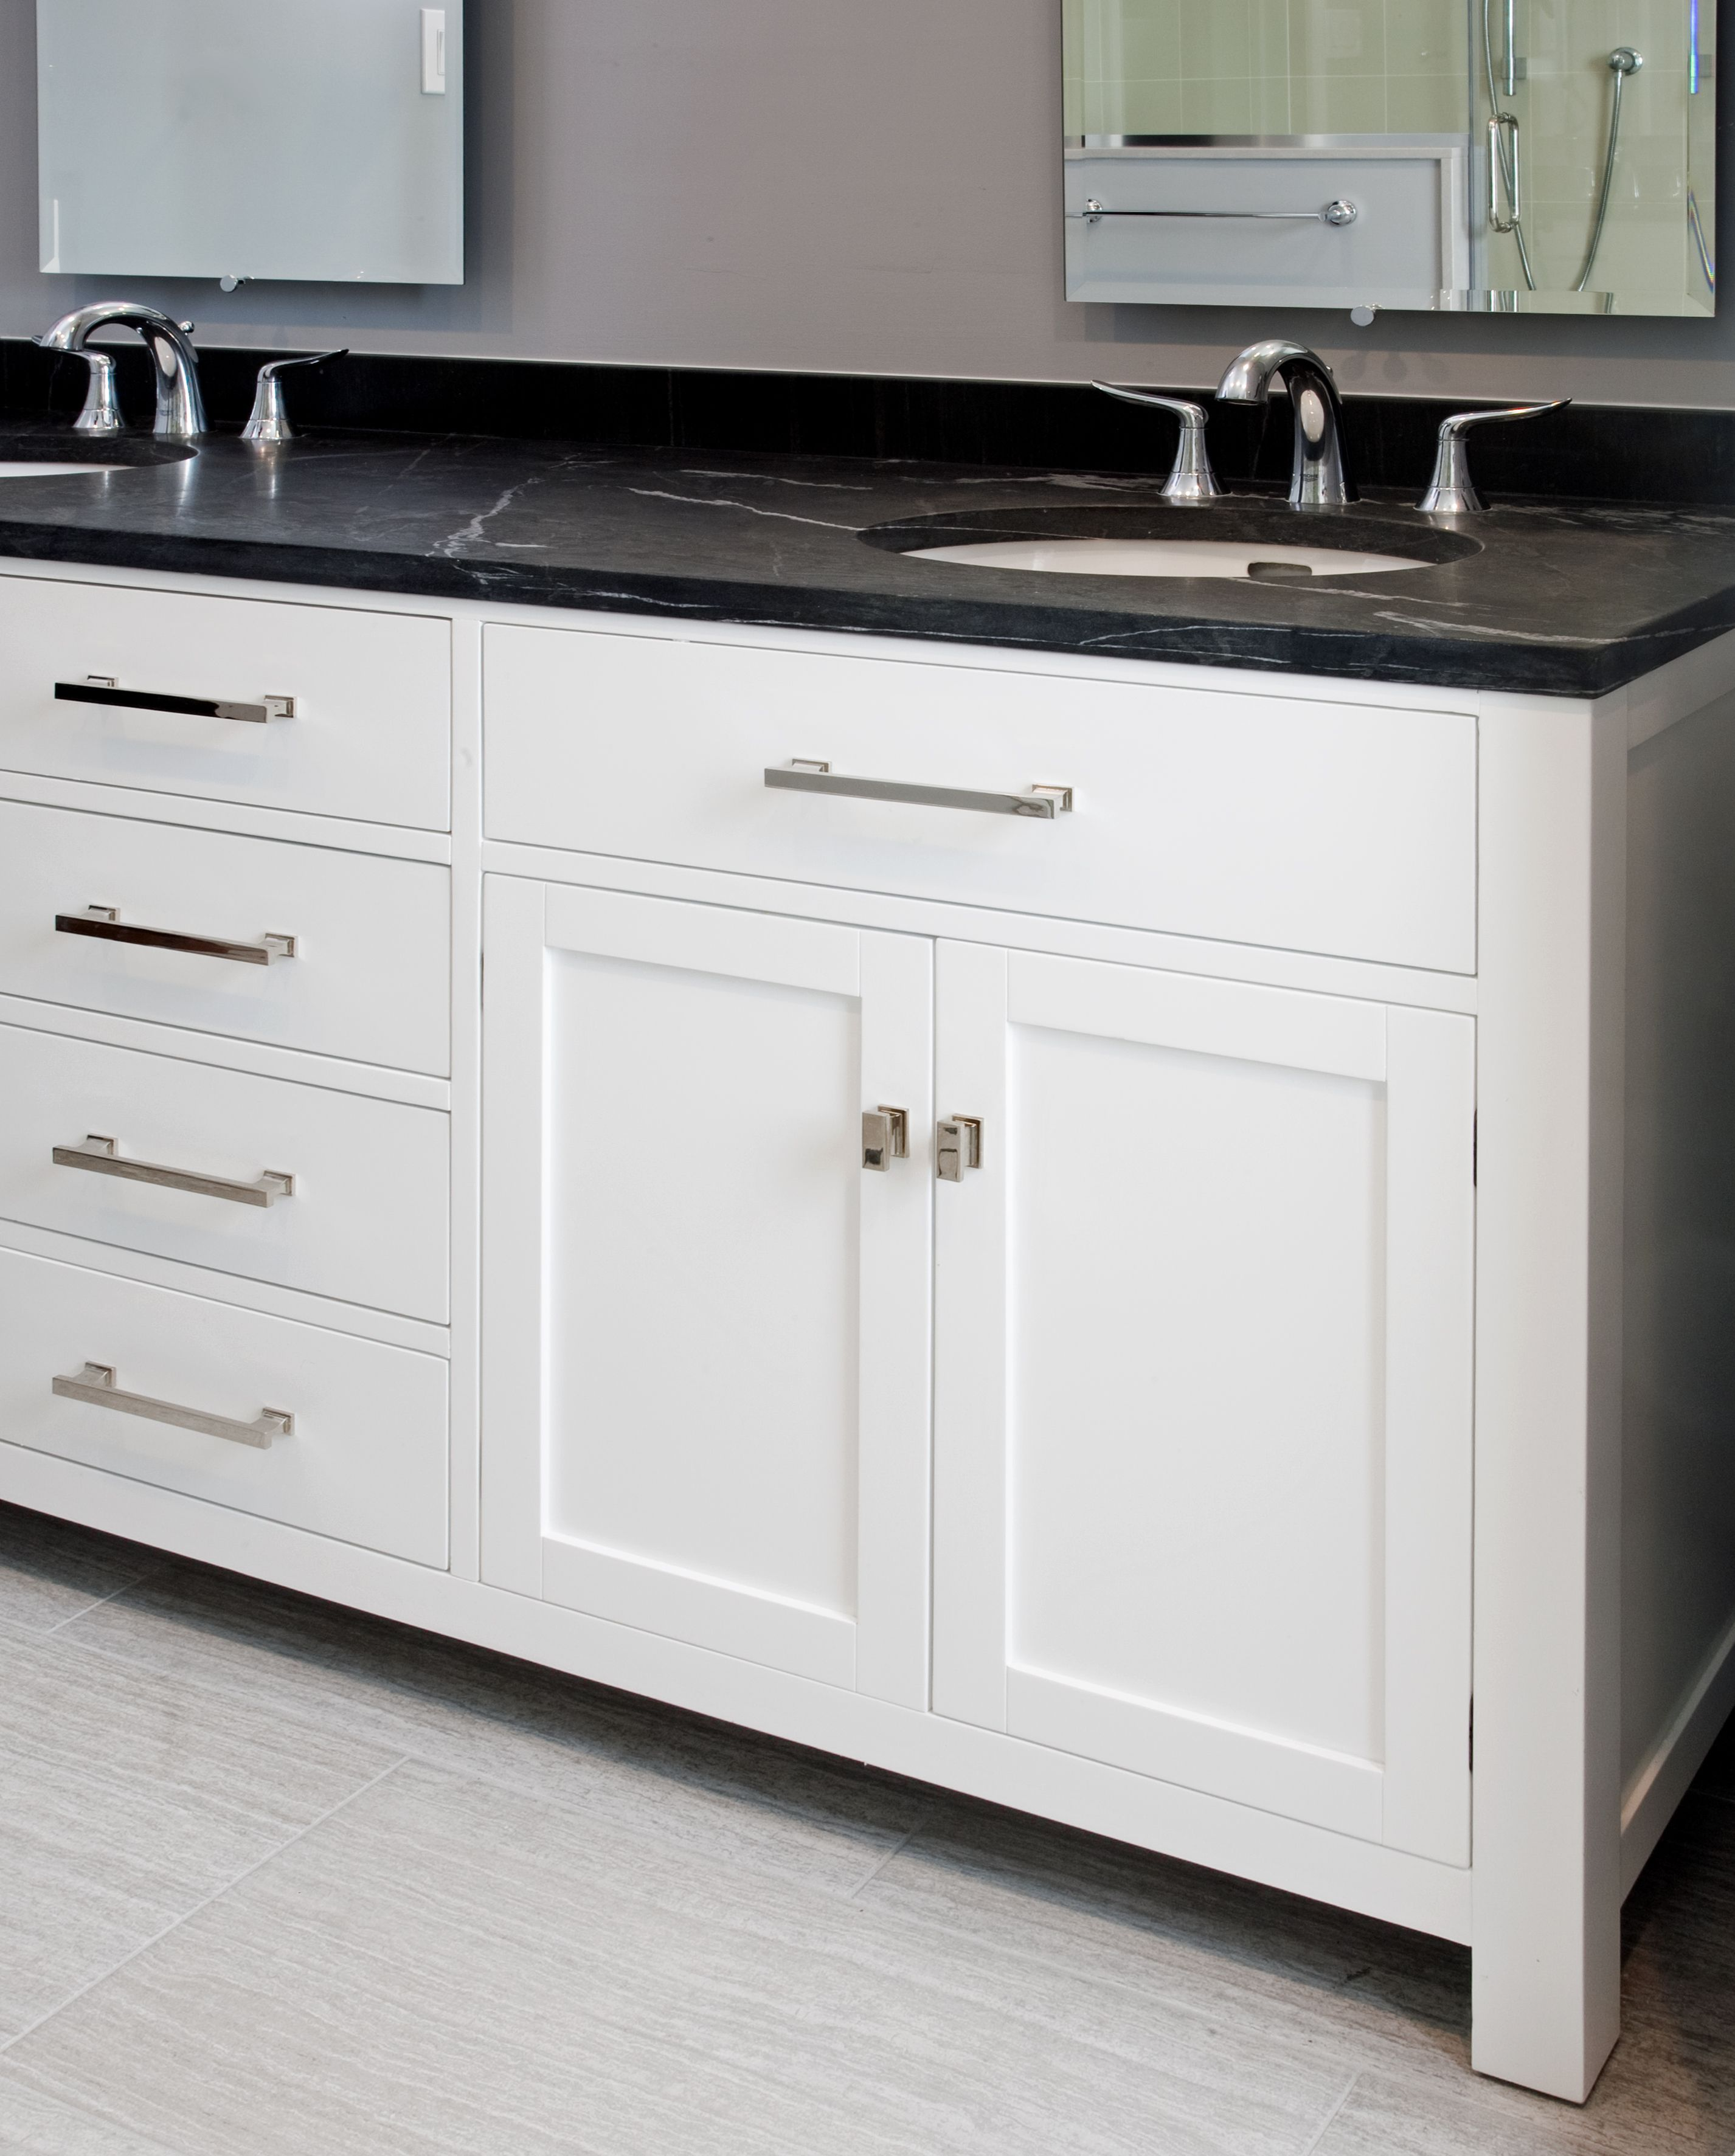 Shaker style vanities bathrooms - The Vanity In This Doylestown Pa Spa Bathroom Features A White Furniture Style Vanity With Shaker Doors And Slab Drawers The Vanity Top Made Of Pietra